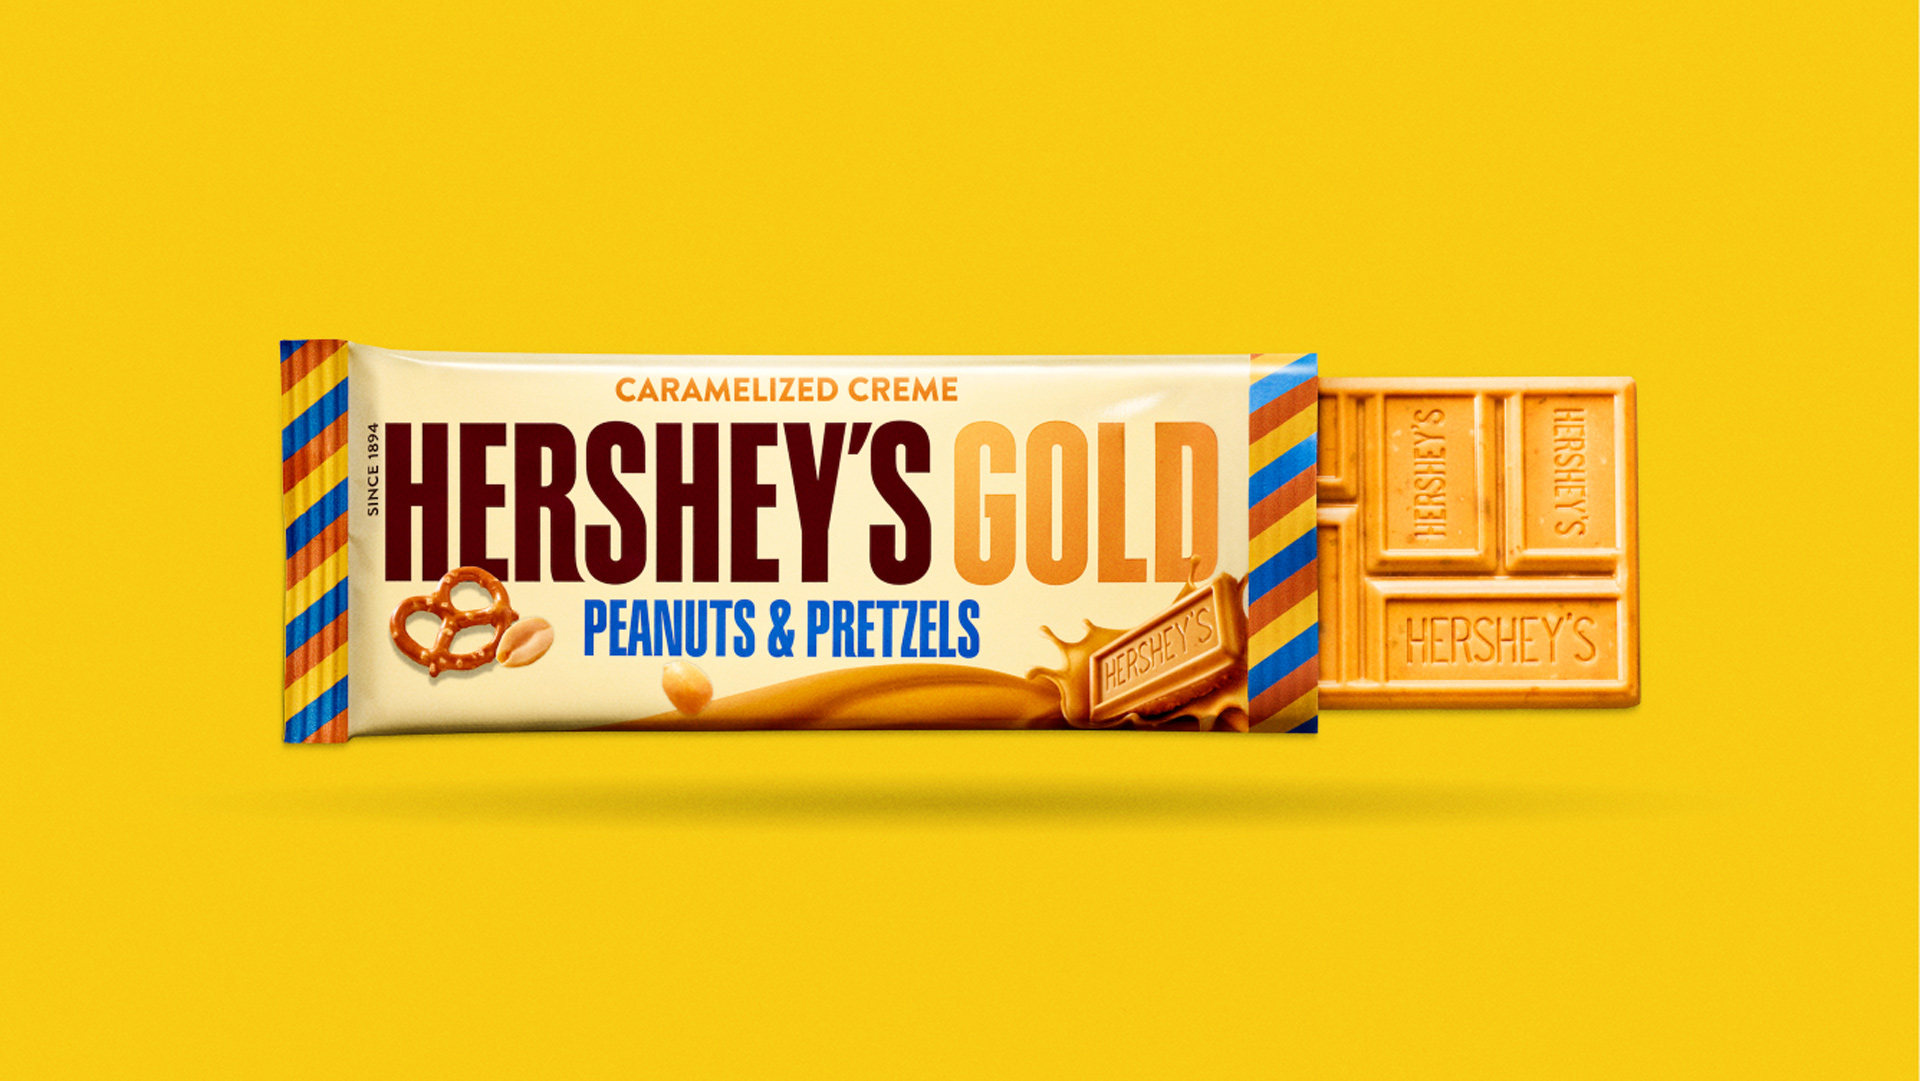 Hershey's Gold – Campaign Launch